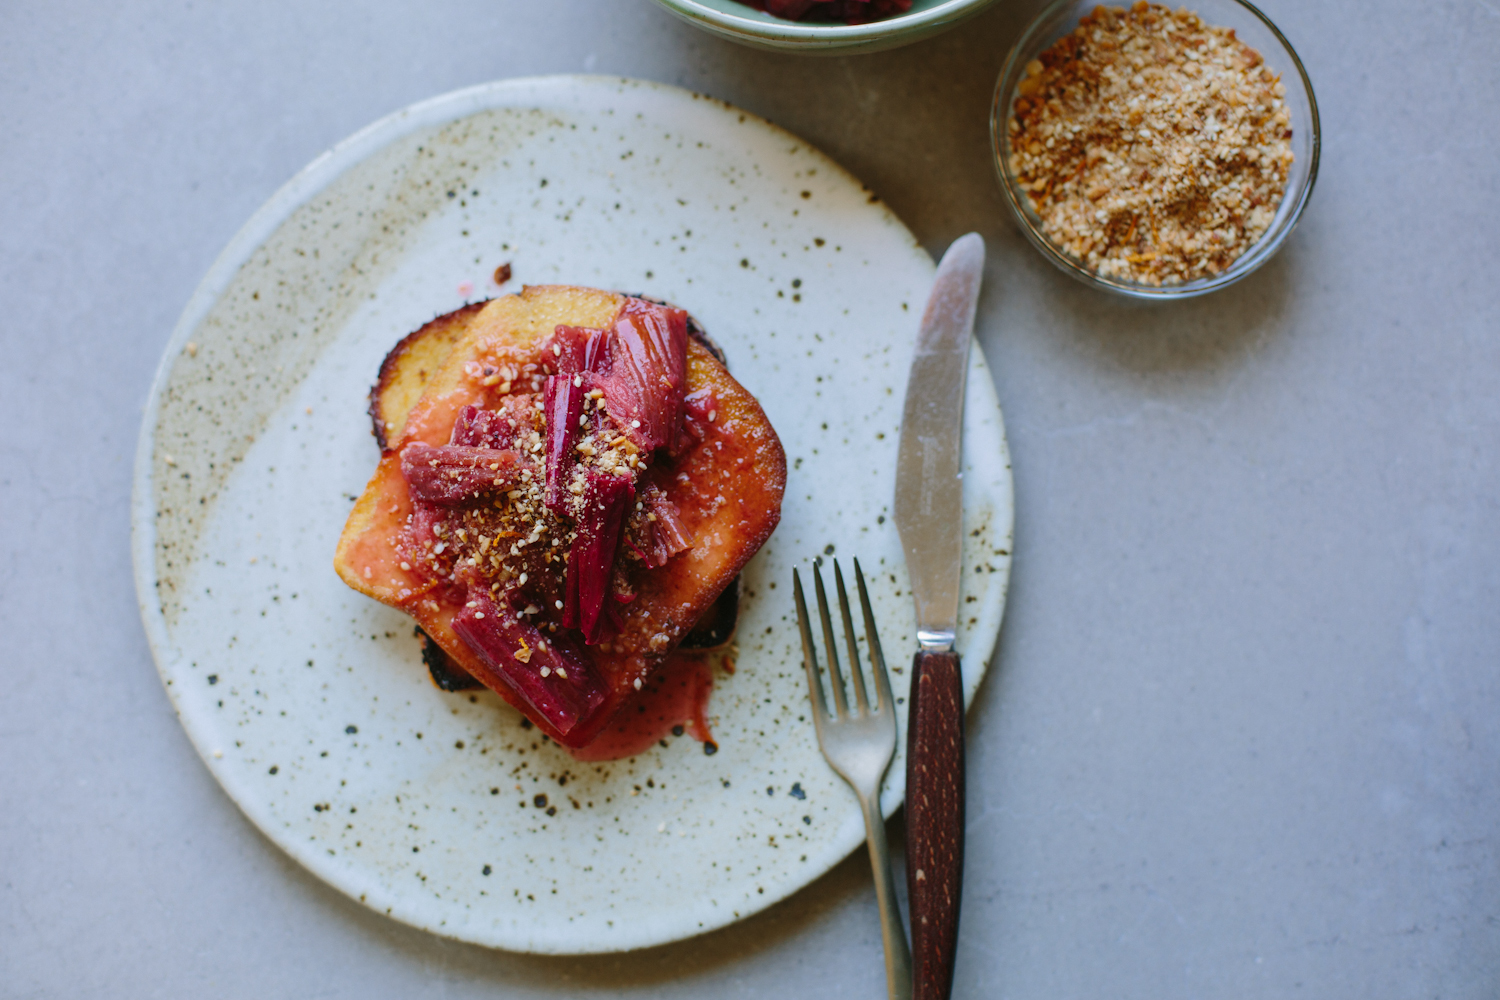 Coconut French toast with roasted rhubarb + hazelnut and orange dukkah (gluten + dairy-free) + a giveaway!